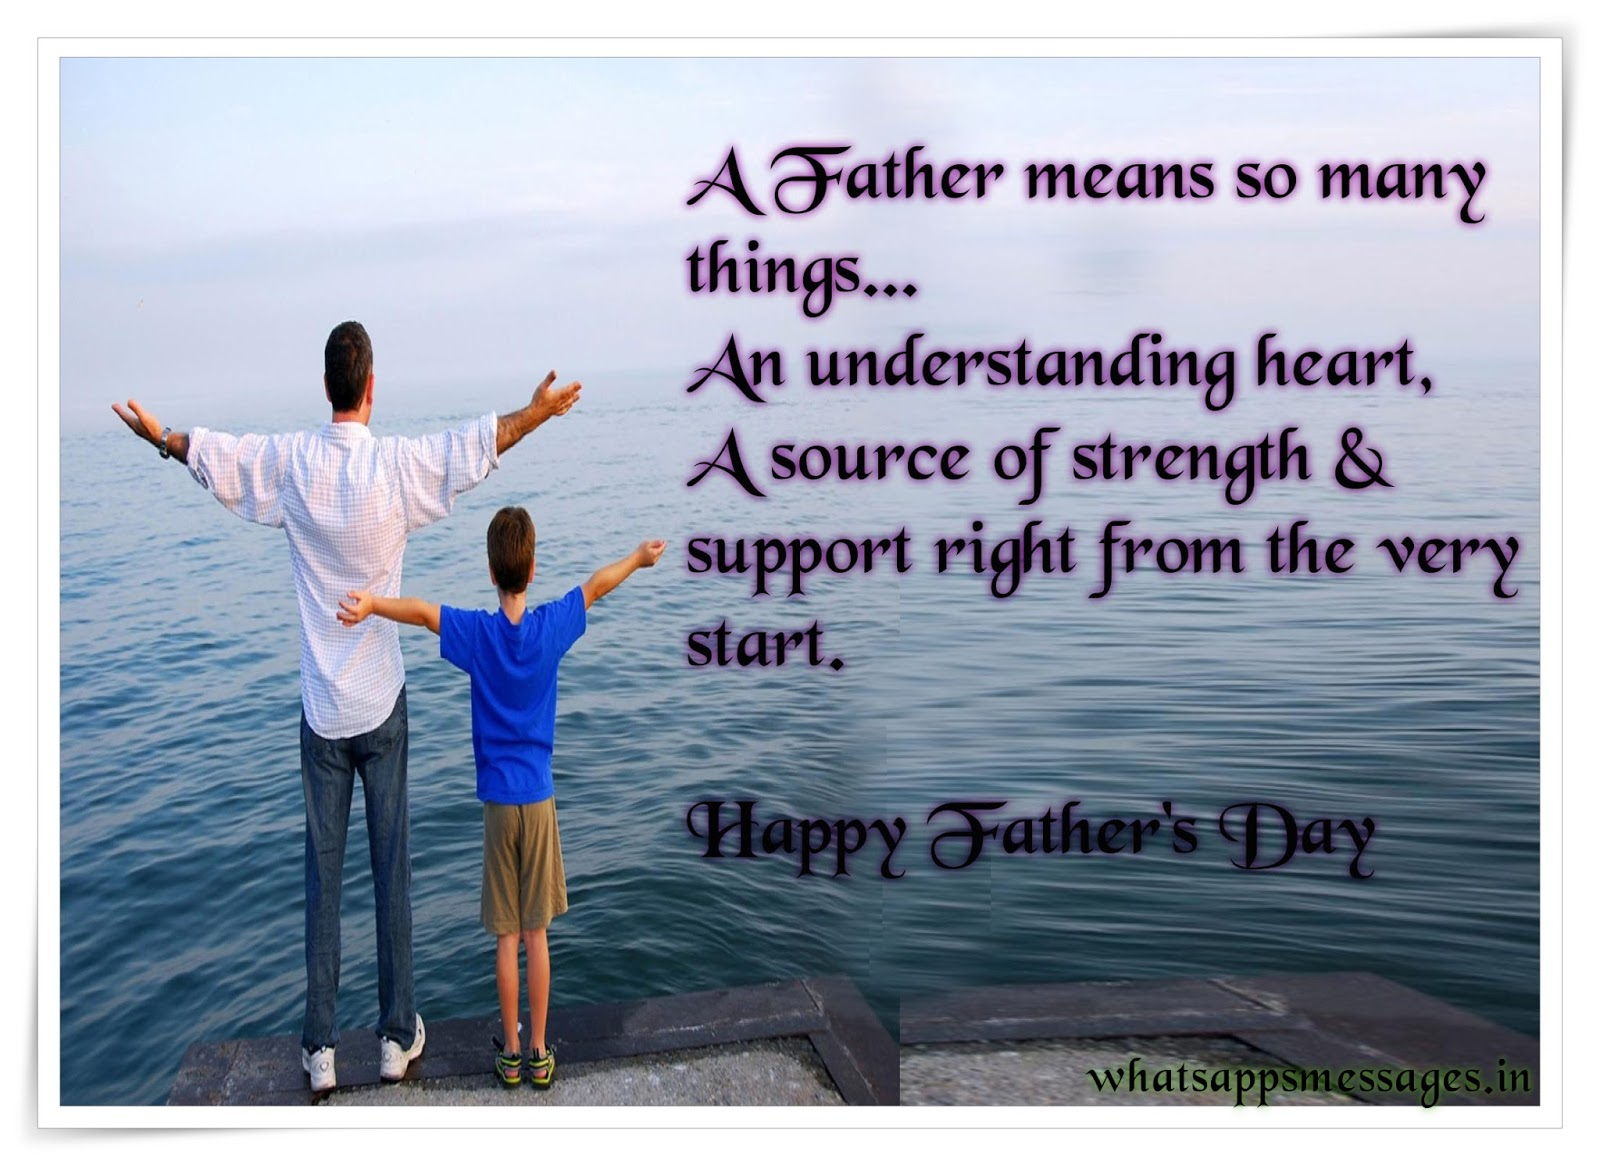 Fathers Day Sms Messages Greetings Whatsapp Messages Watermelon Wallpaper Rainbow Find Free HD for Desktop [freshlhys.tk]